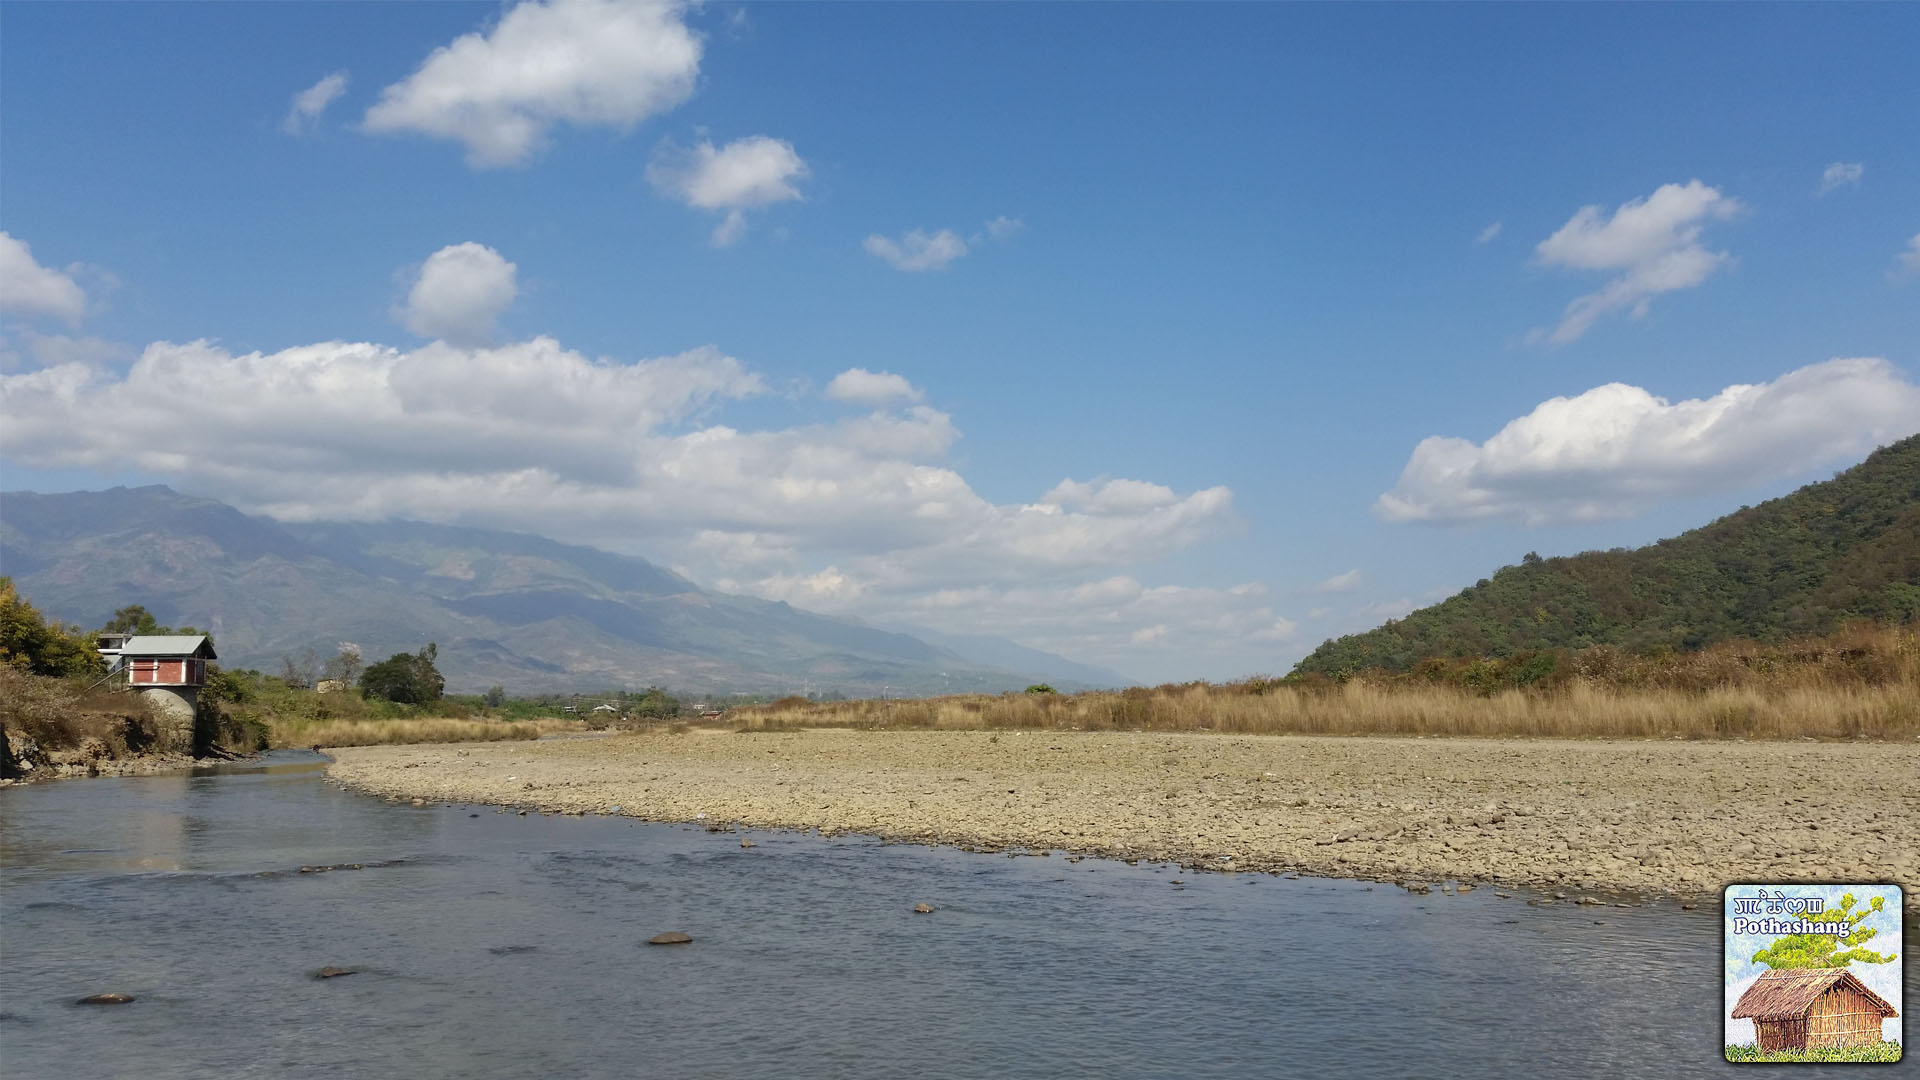 Landscape view of Sekmai River, Manipur